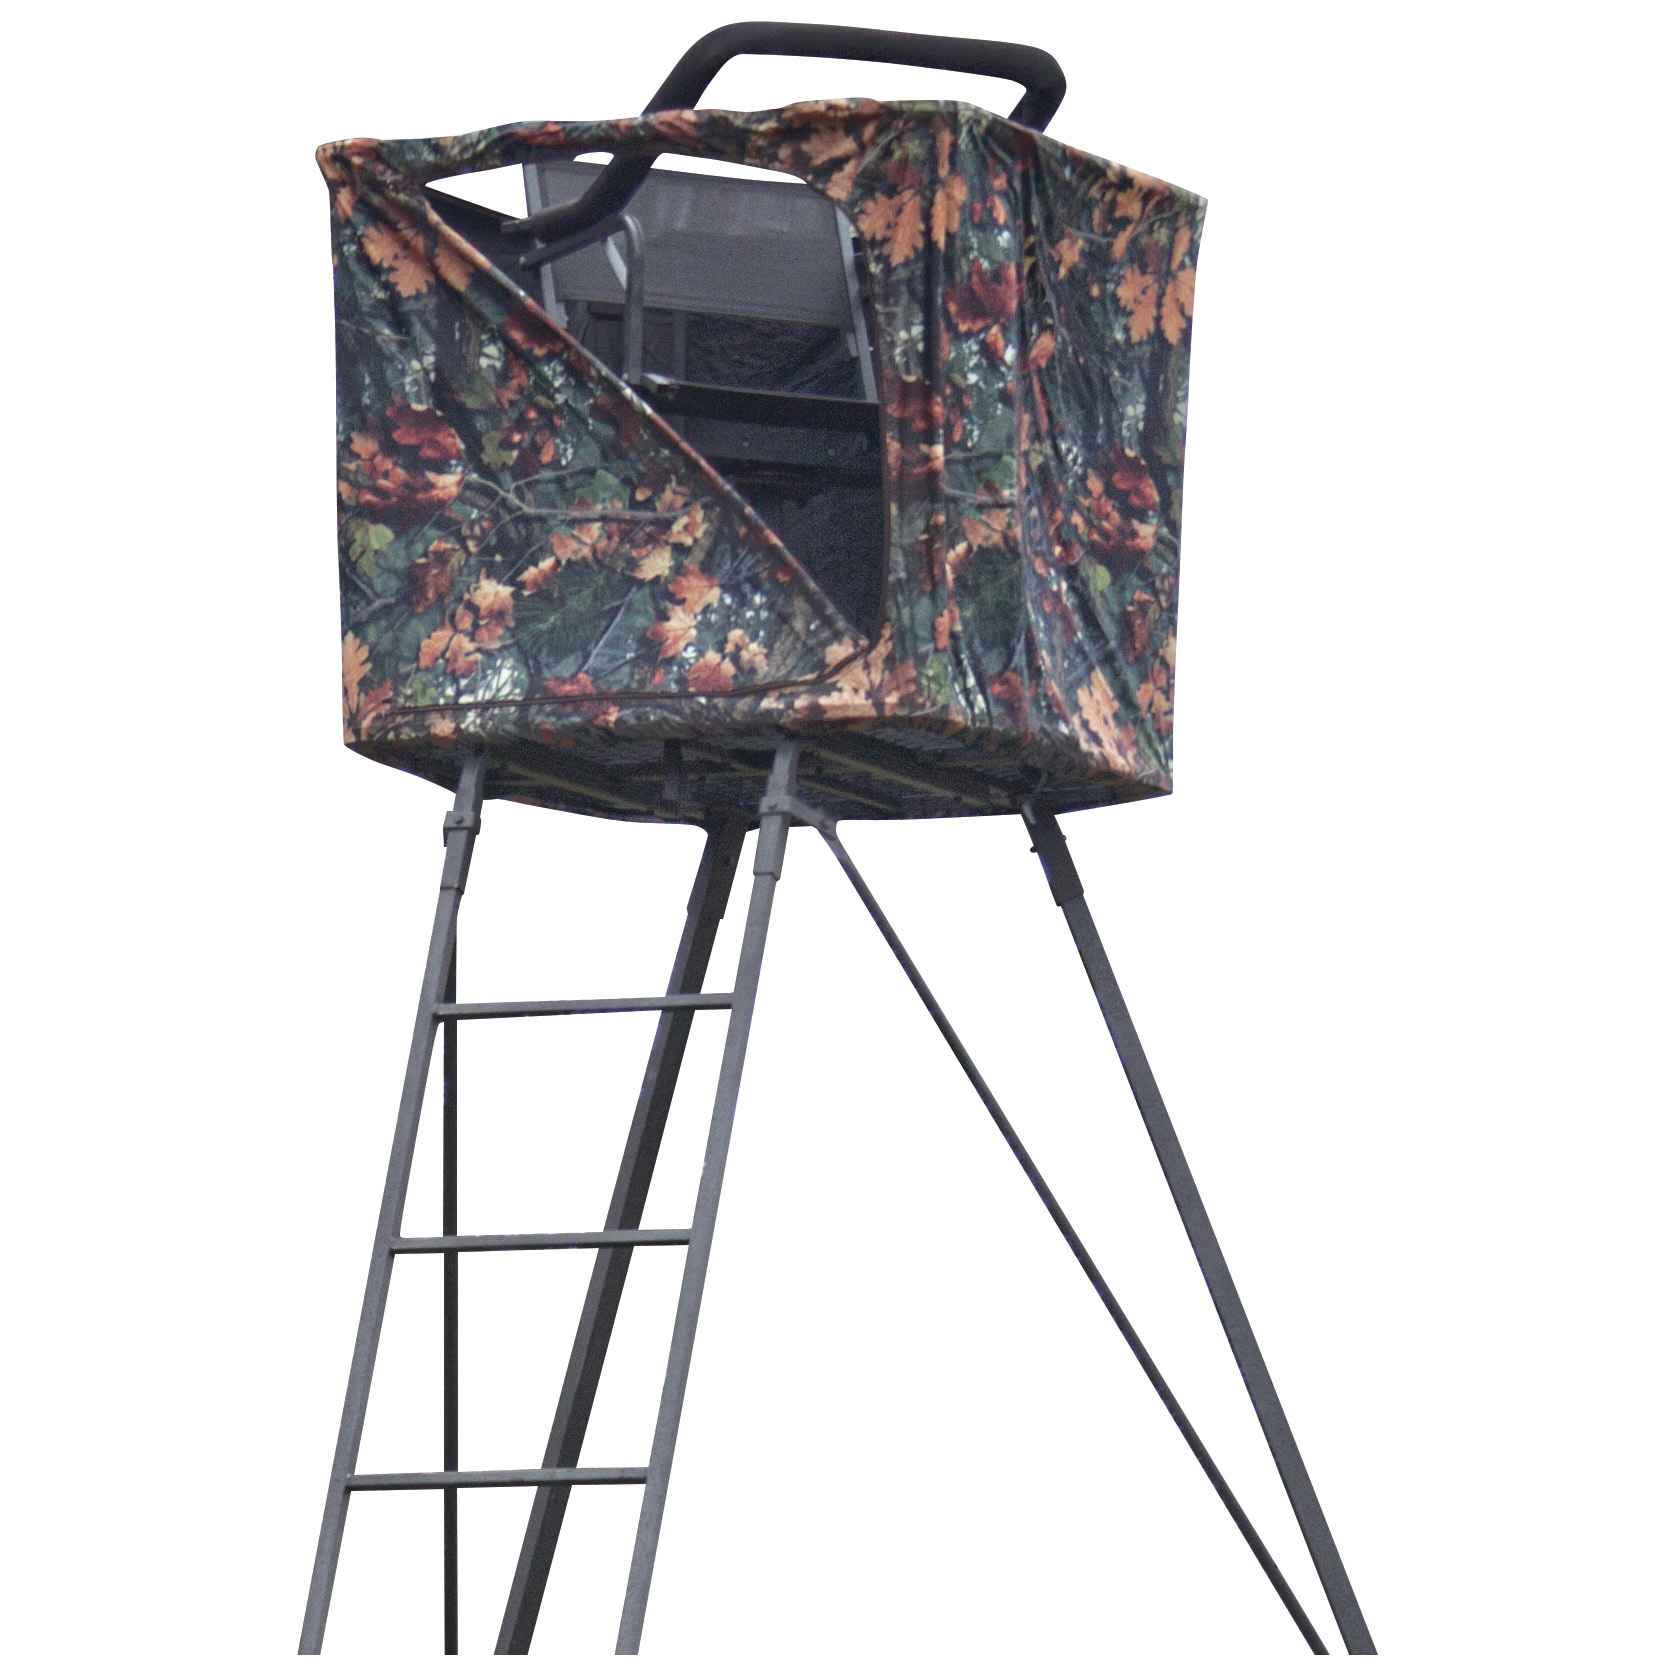 "Rivers Edge 14' Perimeter 1-man Ladder Pod with Curtain. Superior comfort with a 360 degrees view of action! The seat pivots a full 360 degrees, so you won't miss a thing! This Perimeter Pod gets you up to a nice, high vantage point and gives you a full, unhindered range of view, great for wide-open or tree-less areas. And you get to enjoy your advantage in all-day comfort with the TearTuff mesh seat and large 3 x 3' platform. Plus, it comes with the Perimeter Pod Curtain, so you get a little extra protection from the wind and other elements...and your movement stays concealed! Great for gun and bow hunters alike.Ladder Pod features:Constructed of strong welded tubular steel for years of durable use Extremely stable design with rock-solid cross bracing for stability 3 x 3' platform provides more than enough hunting space for the perfect shot Swivel seat rotates 360 degrees for easy shooting in any direction Flip-up shooting rail pivots with the seat Easy-up attached ladder for safe climbing Measures 14' h., weighs 94 lbs. Perimeter Pod Curtain features:Extra-tough material with River's Edge camo keeps you concealedAdded protection from the elements... great for cold or windy climatesIncluded metal frame mounts on quick and easy.Please Note: This item is shipped by commercial carrier curbside. This product Ships in 1 Box, Measures 61""l. x 9""w. x 21""h., and Weighs approx. 152lbs. No expedited delivery. High-value orders require a physical street address, otherwise insurance costs will be added to the shipping total. - $324.99"